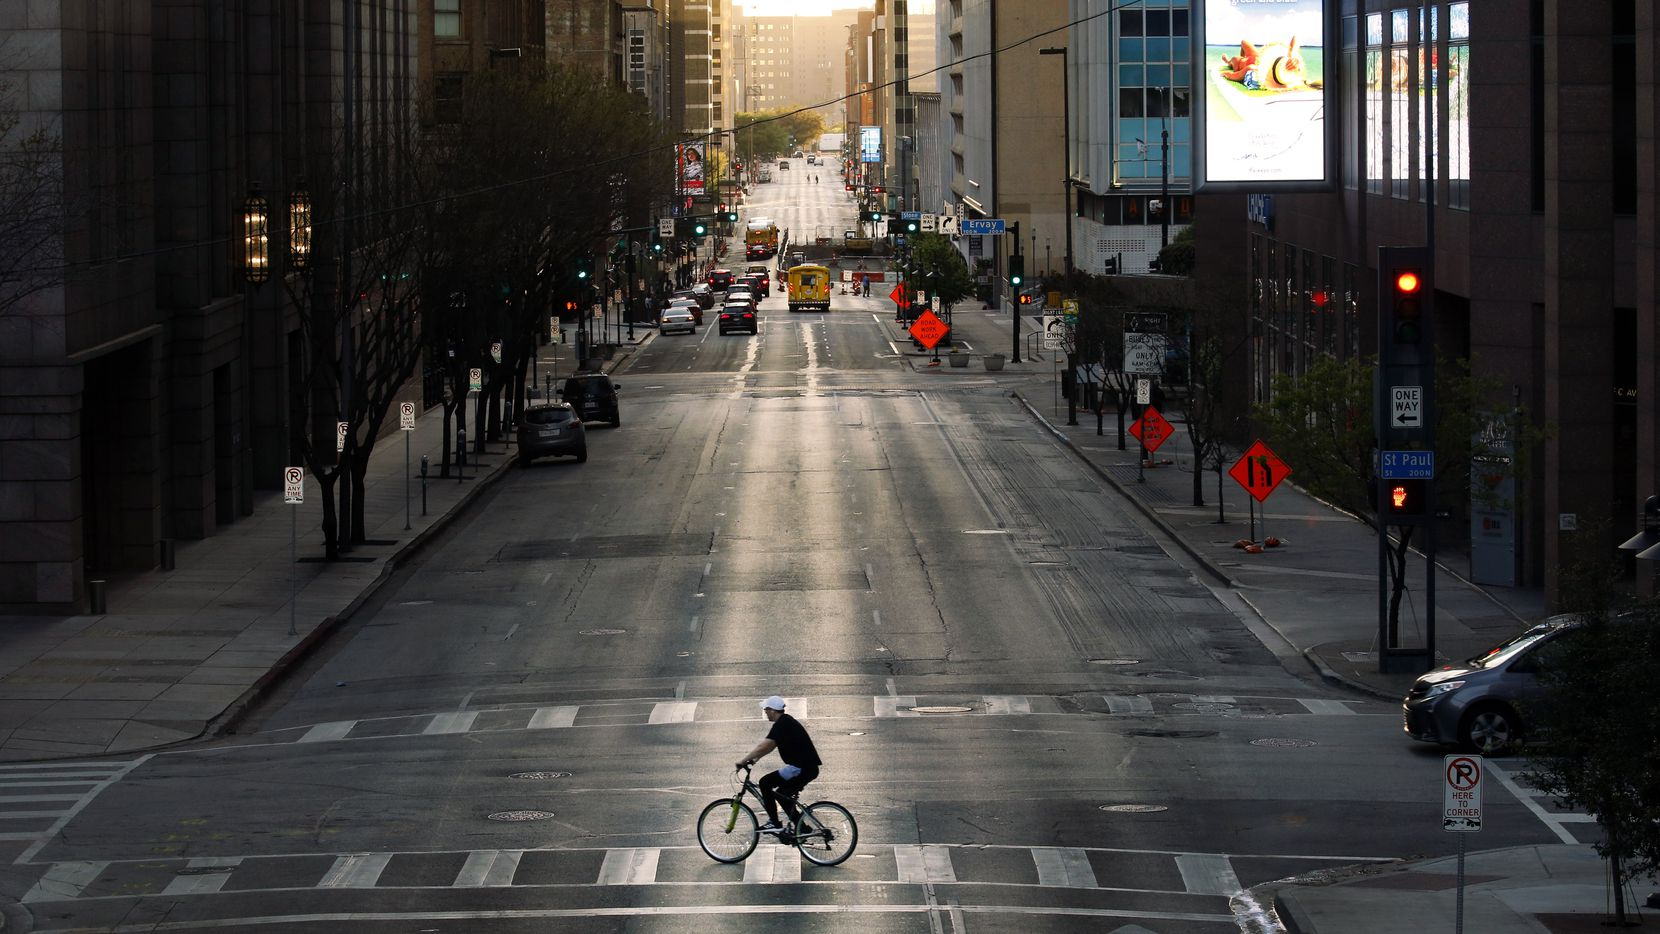 With very few cars on the street, a cyclist peddles across Elm St. in downtown Dallas, Wednesday evening, March 25, 2020.  There's less traffic than normal after Judge Clay Jenkins ordered a shelter-in-place due to coronavirus.